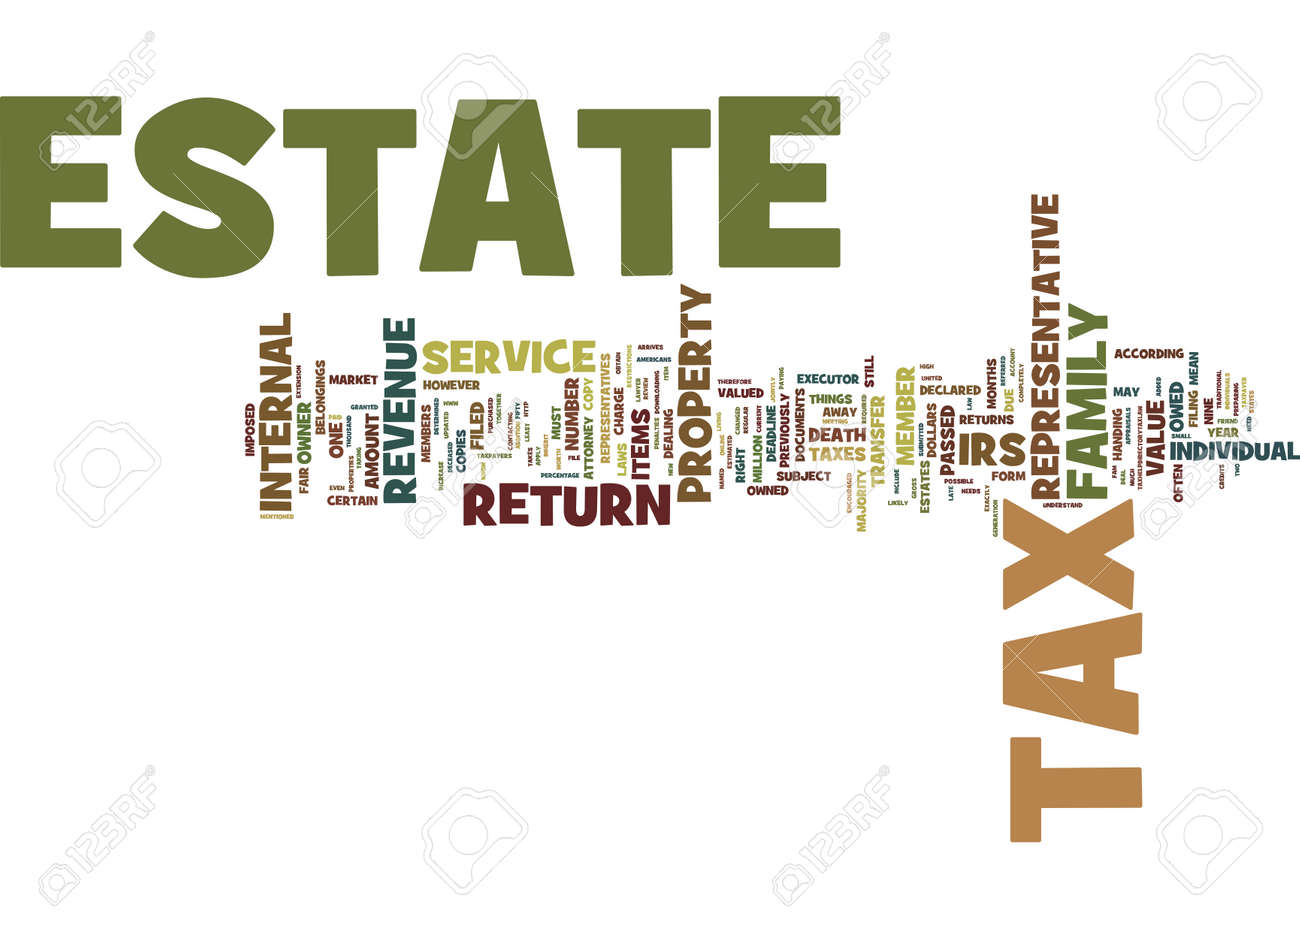 ESTATE TAX WHAT IT IS AND HOW IT IS FILED Text Background Word Cloud Concept - 82600938